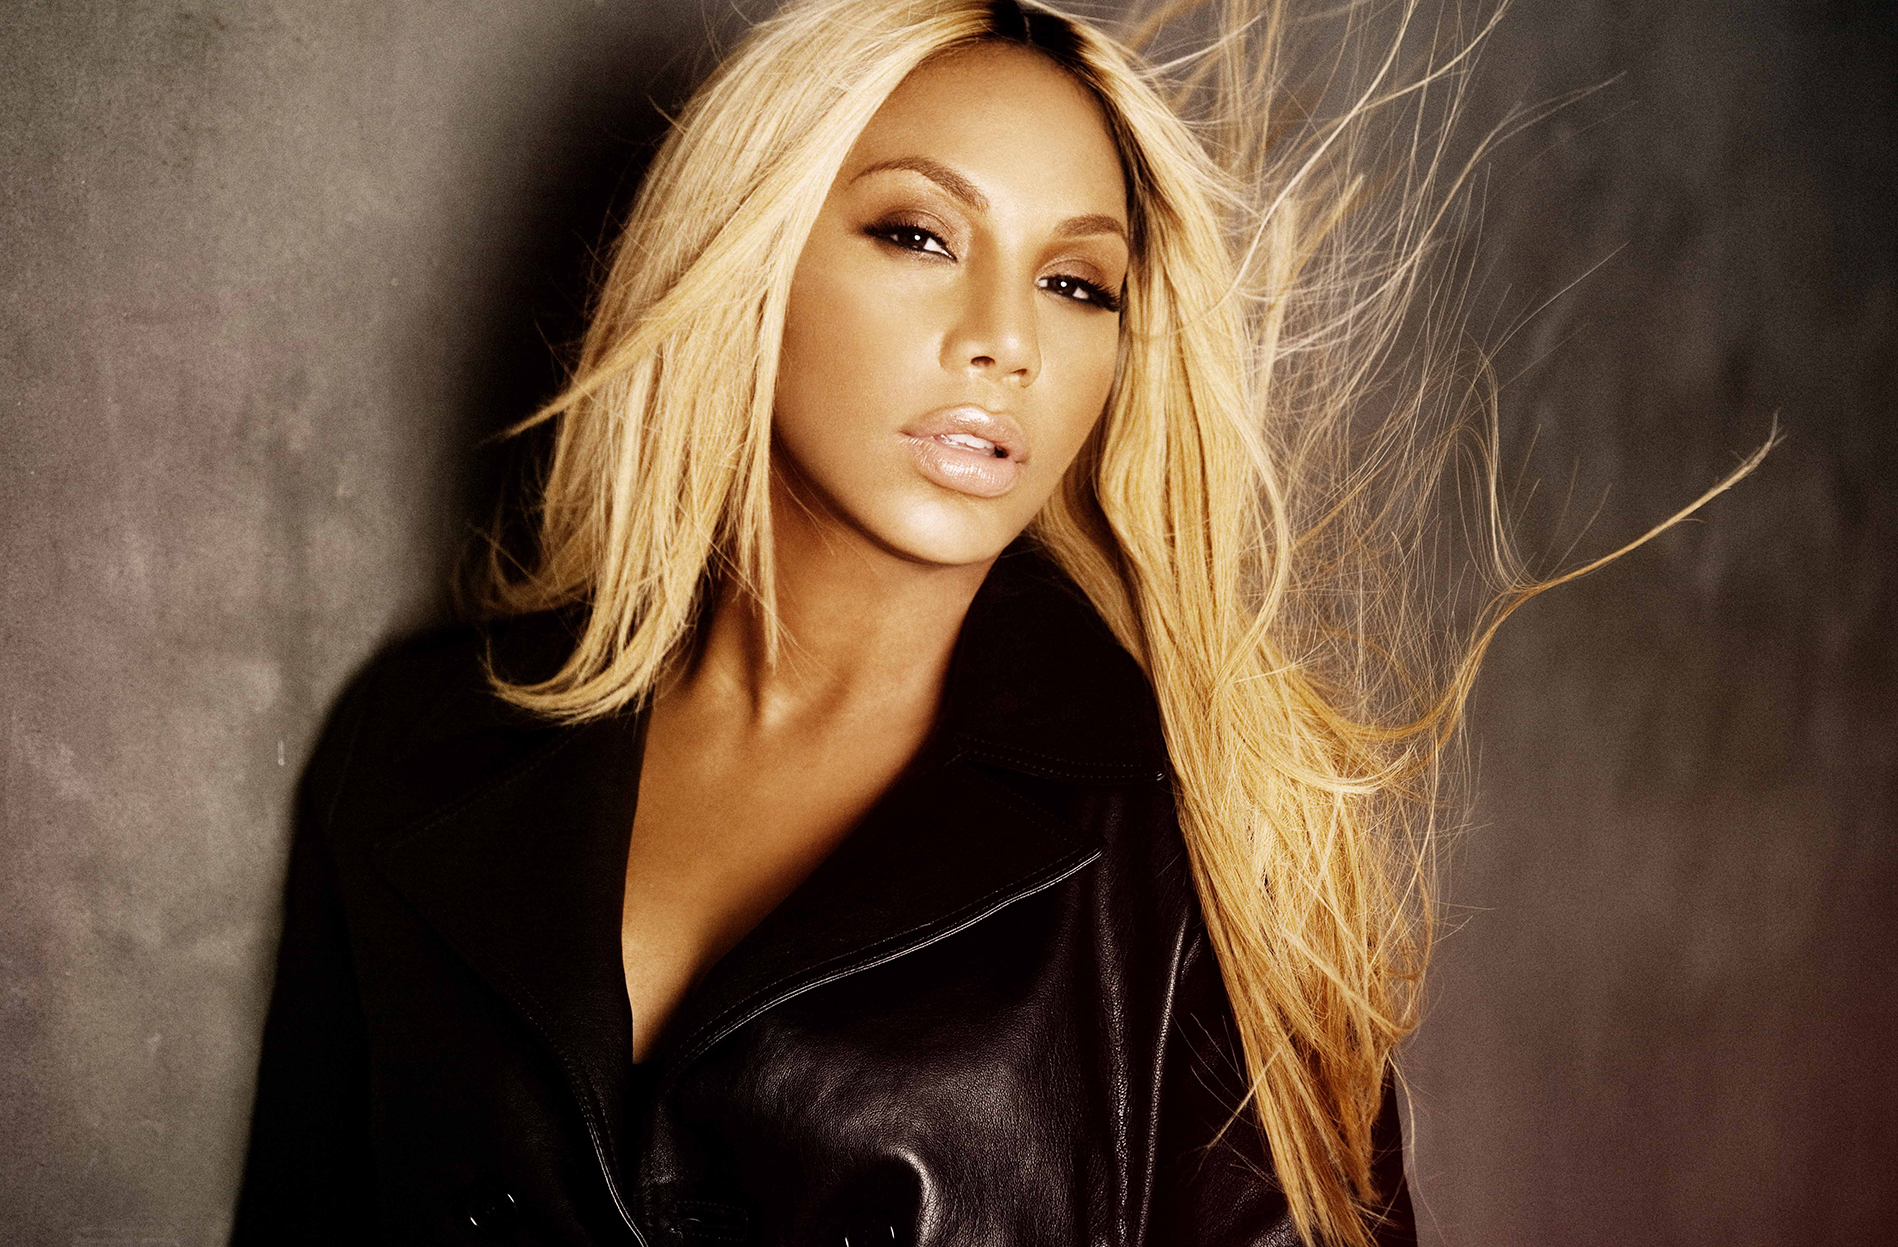 tamar-braxton-flaunts-her-jaw-dropping-look-for-kandi-burruss-welcome-to-the-dungeon